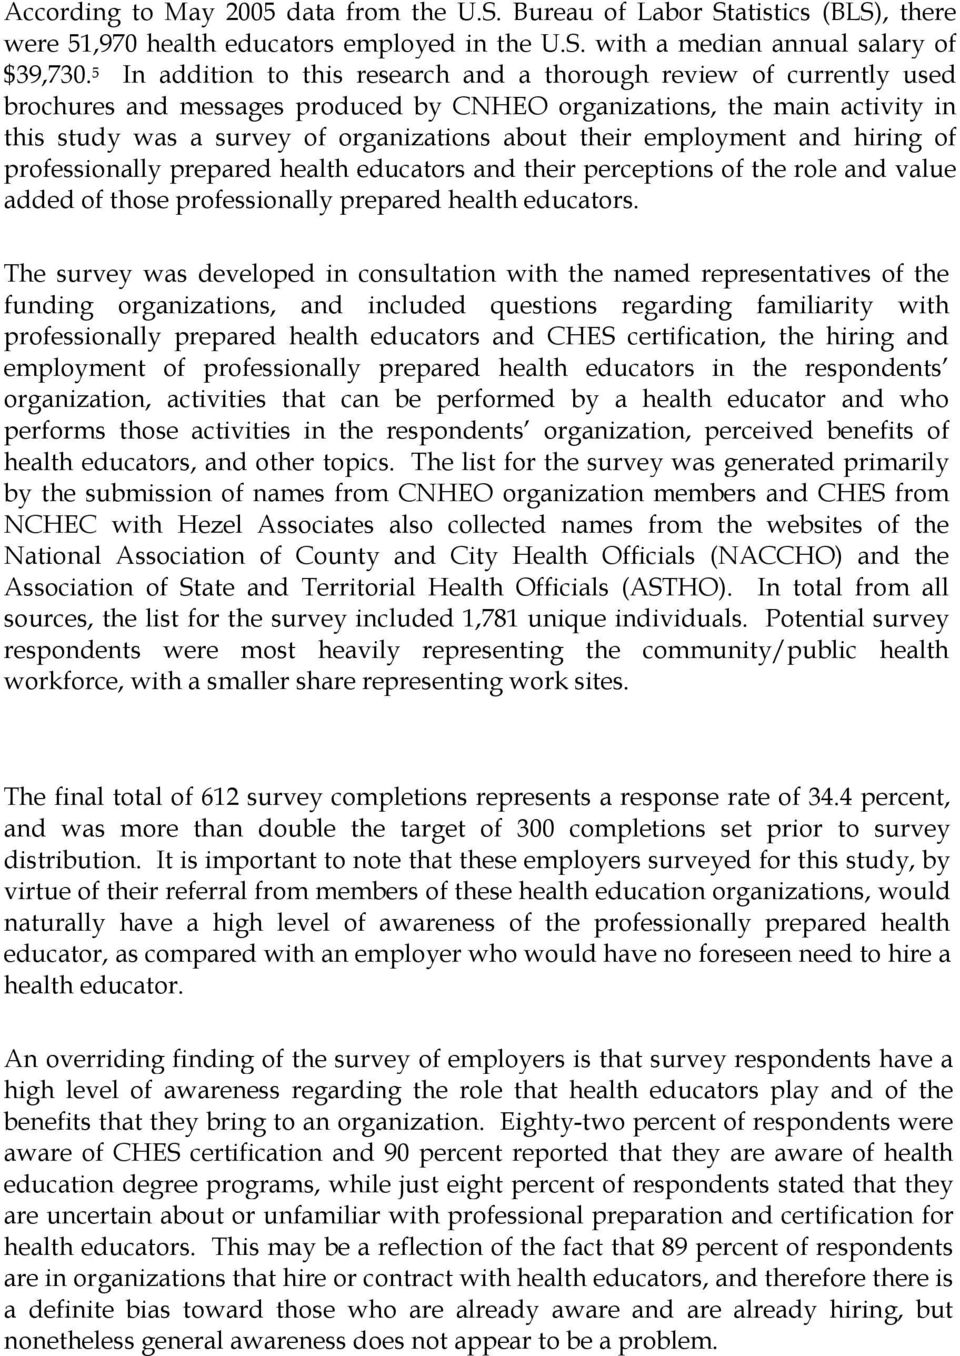 their employment and hiring of professionally prepared health educators and their perceptions of the role and value added of those professionally prepared health educators.